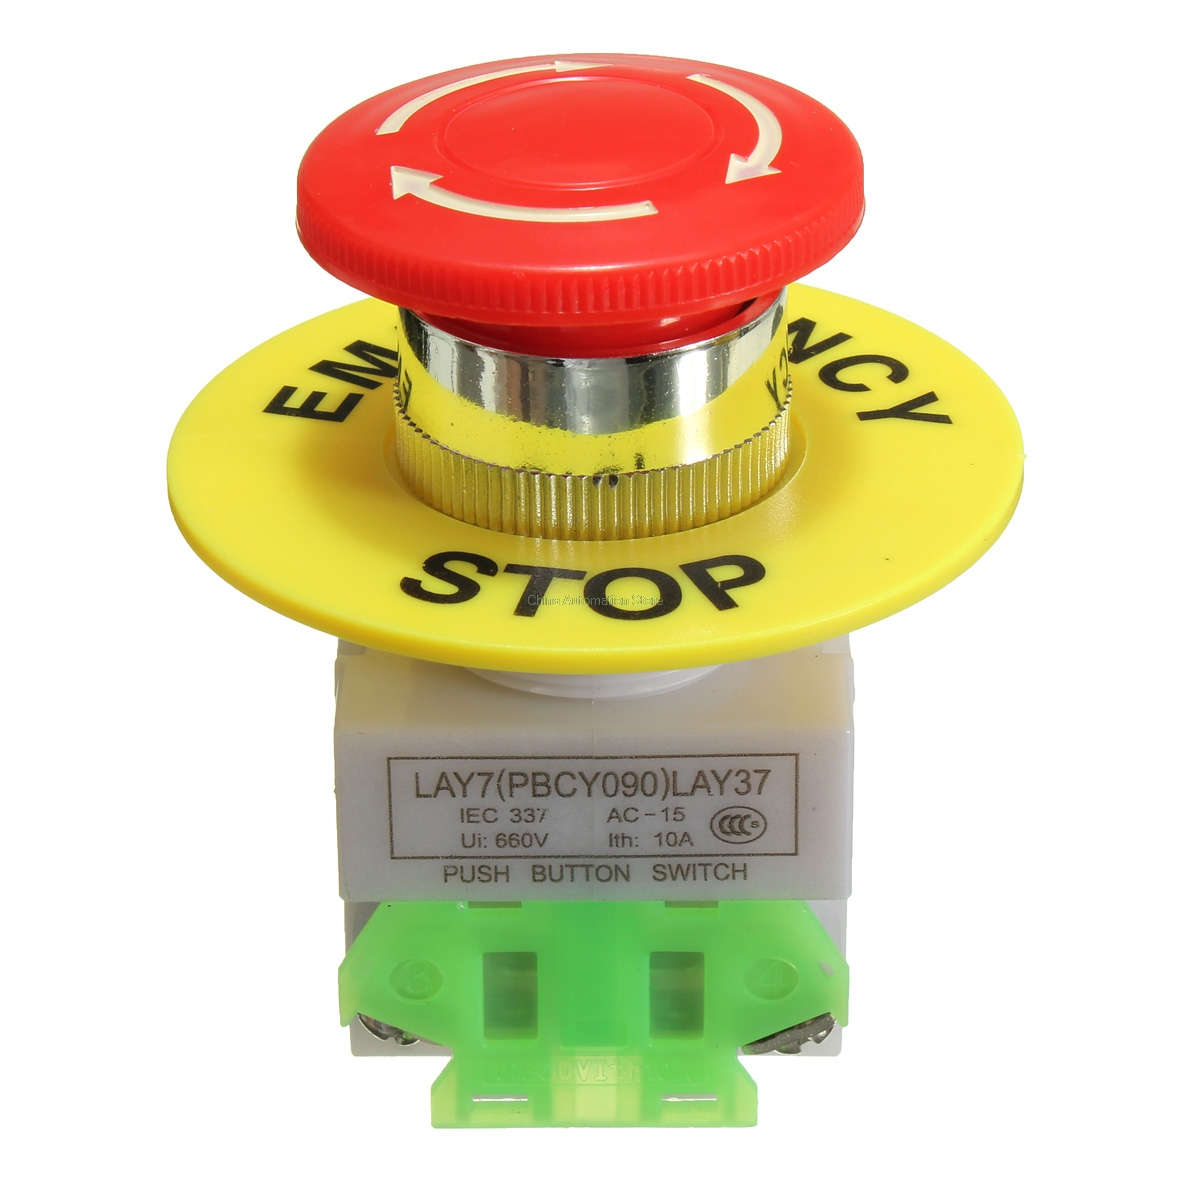 Red Mushroom Cap 1NO 1NC DPST Emergency Stop Push Button Switch AC 660V 10A Switch Equipment Lift Elevator Latching Self Lock ac 600v 10a normal close plastic shell red sign emergency stop mushroom knob switch 22mm elevator emergency stop switch